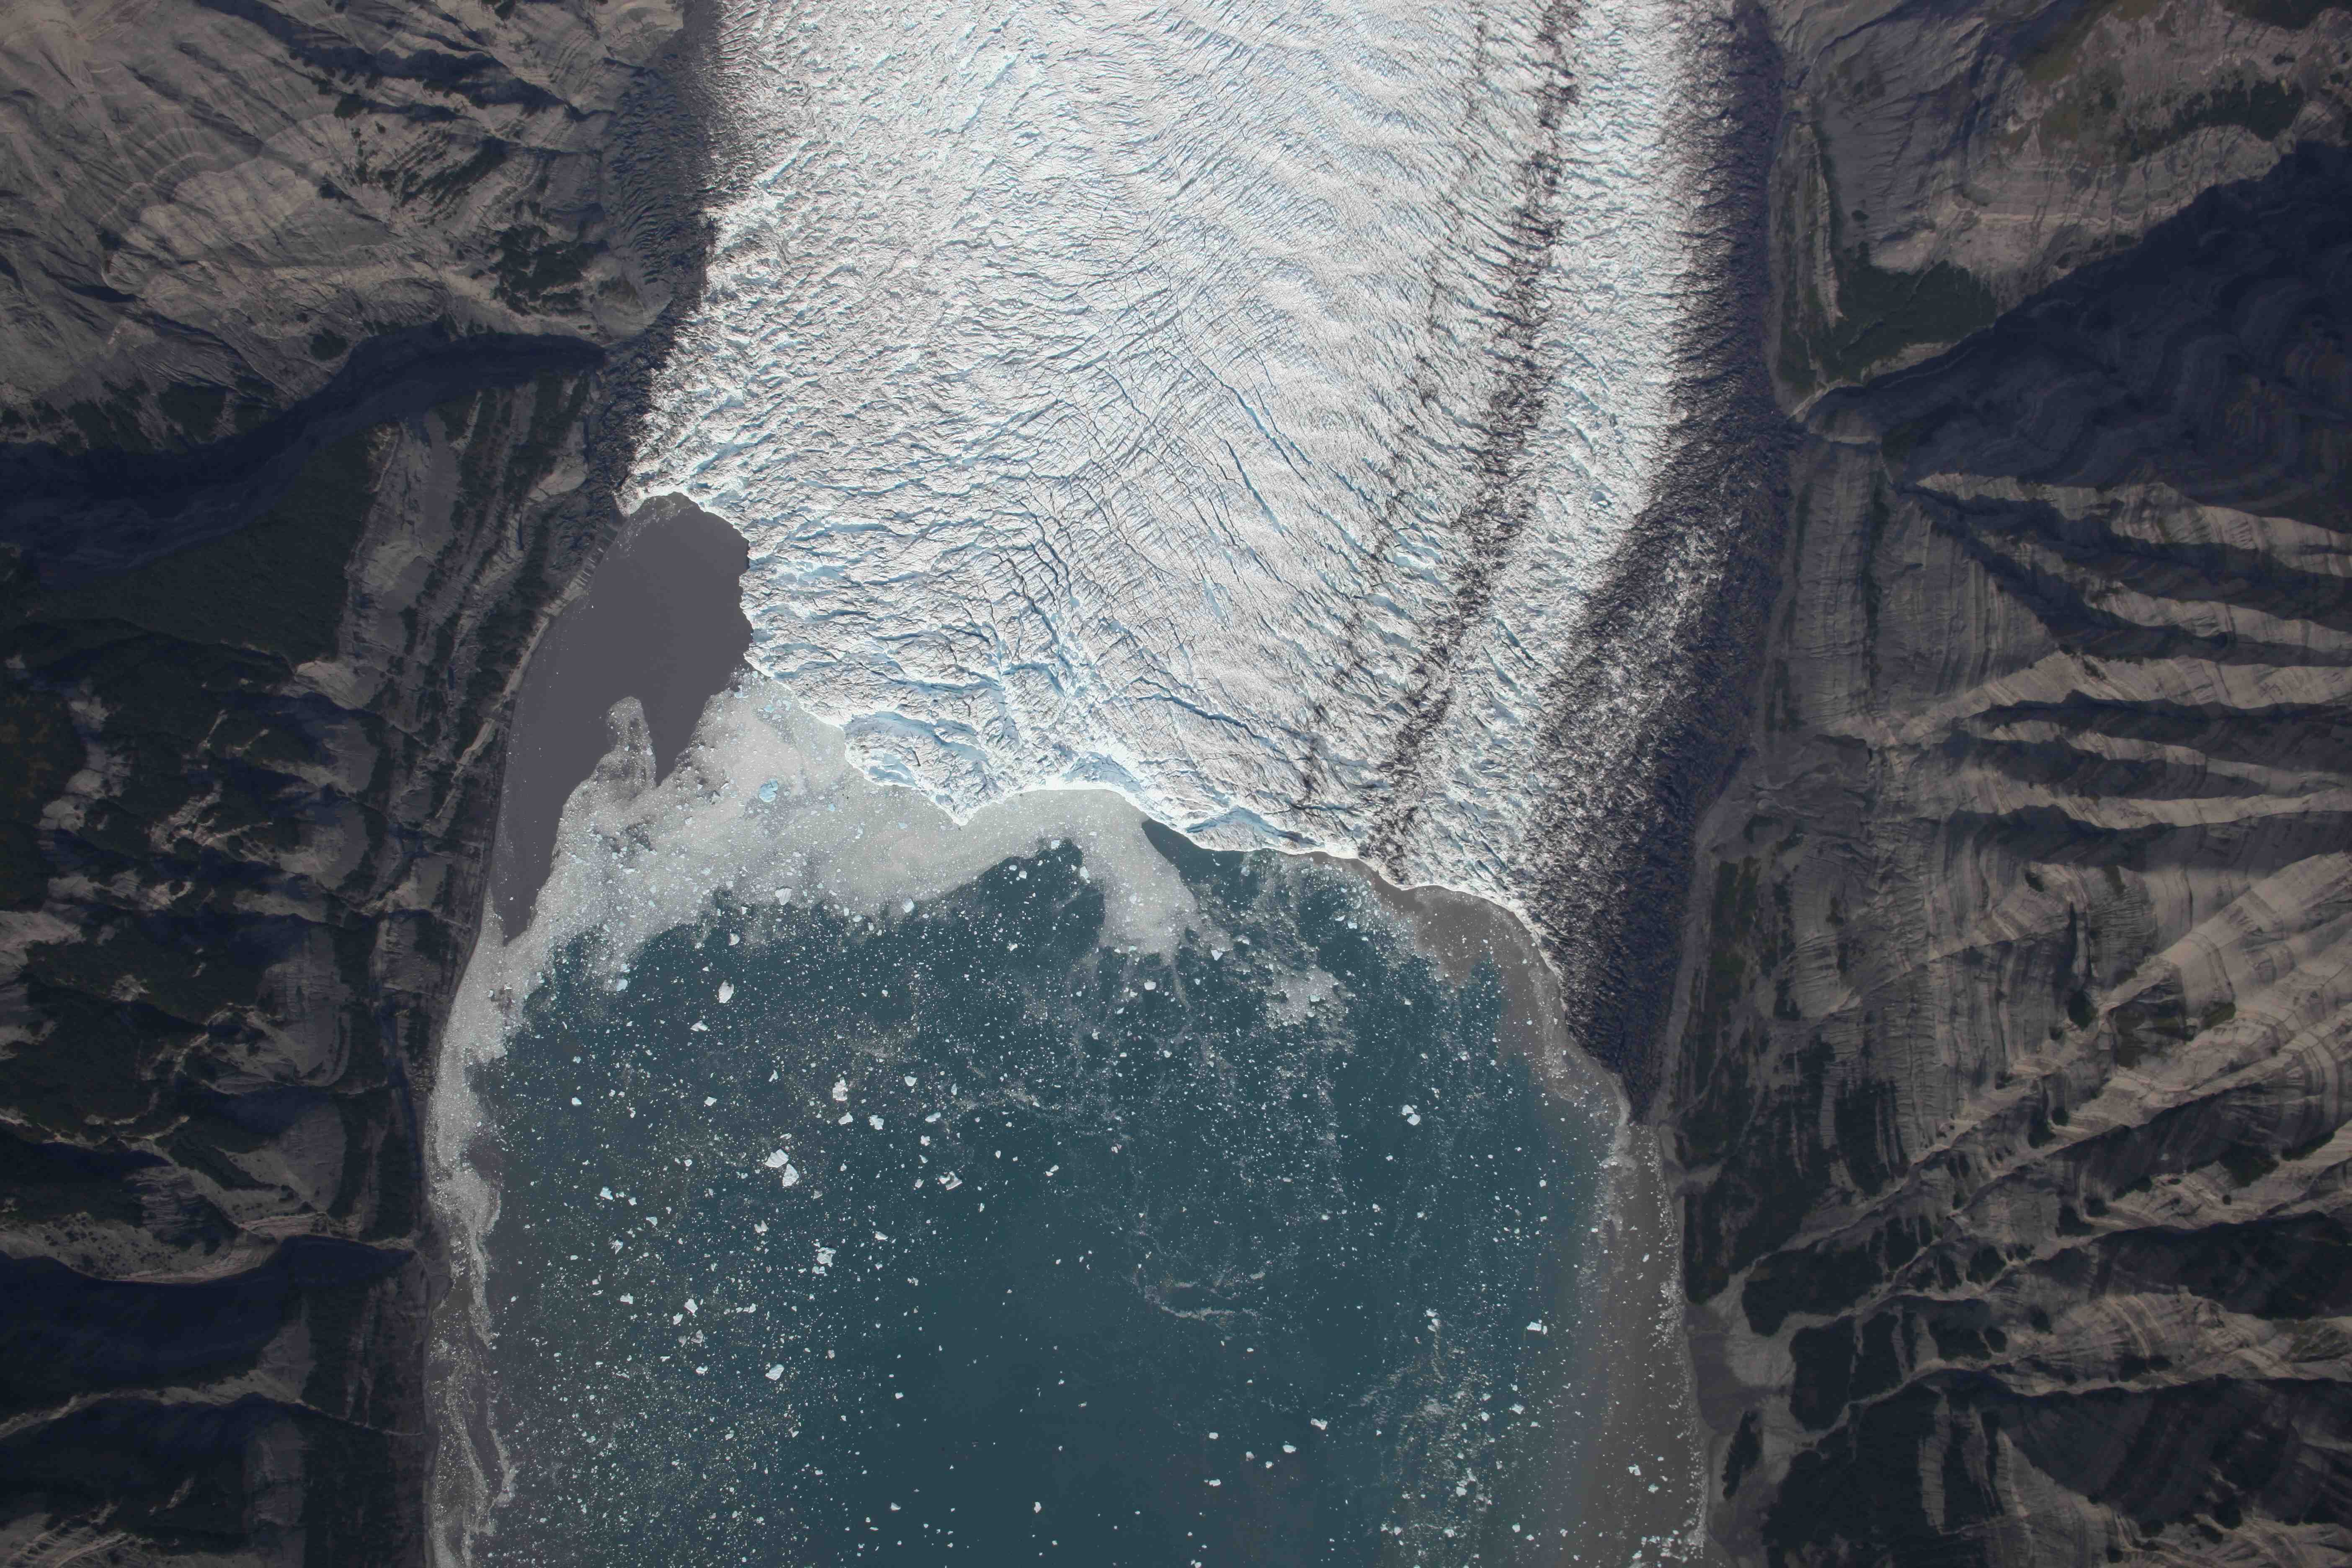 A vertical aerial view of Yahtse Glacier